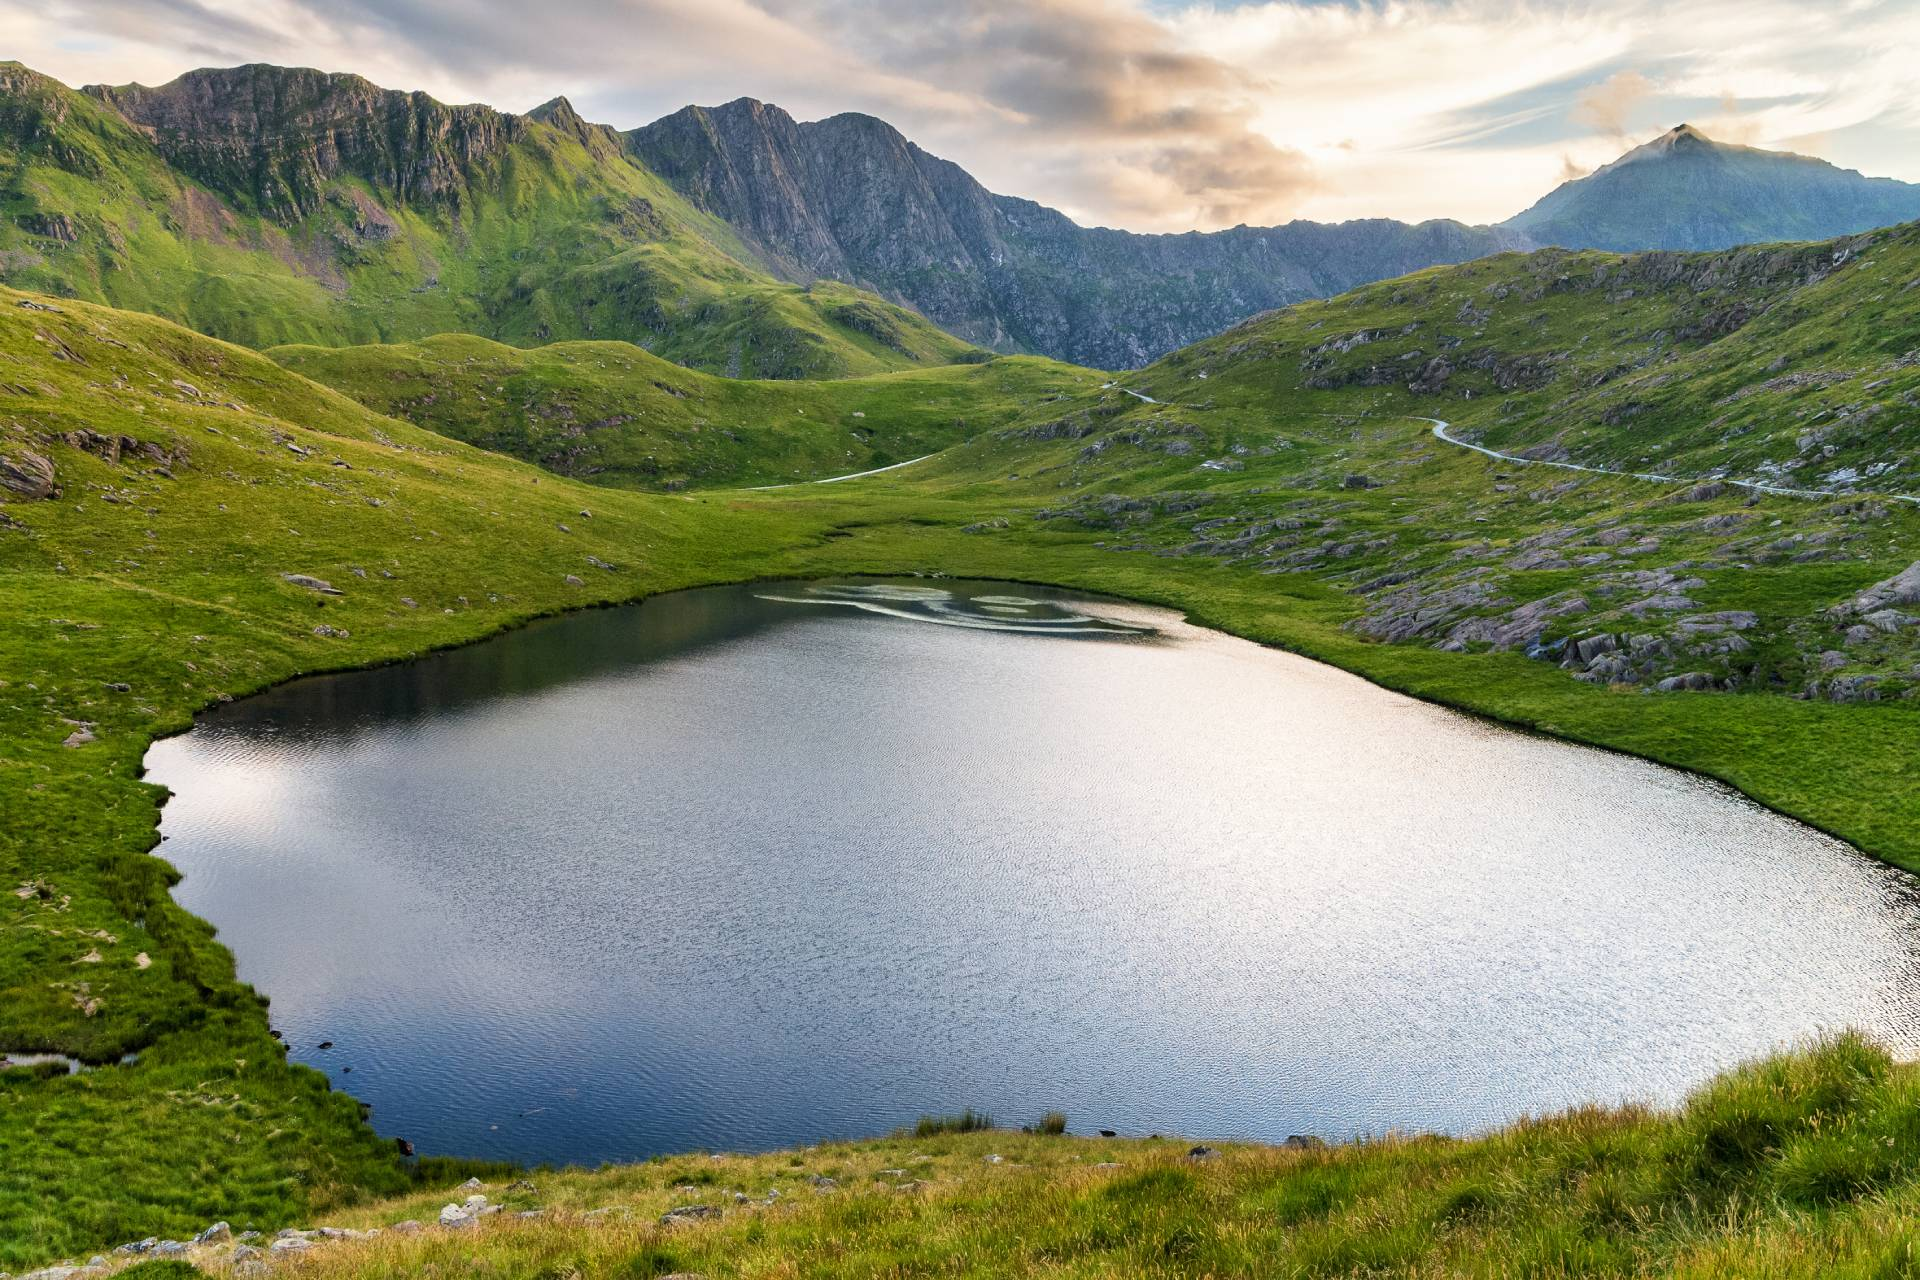 Lake called Llyn Teyrn under hiking pathway to Snowdon Peak called Miner´s track, Wales, Great Britain. Soft warm sunset light reflected in cool blue surface of the water.